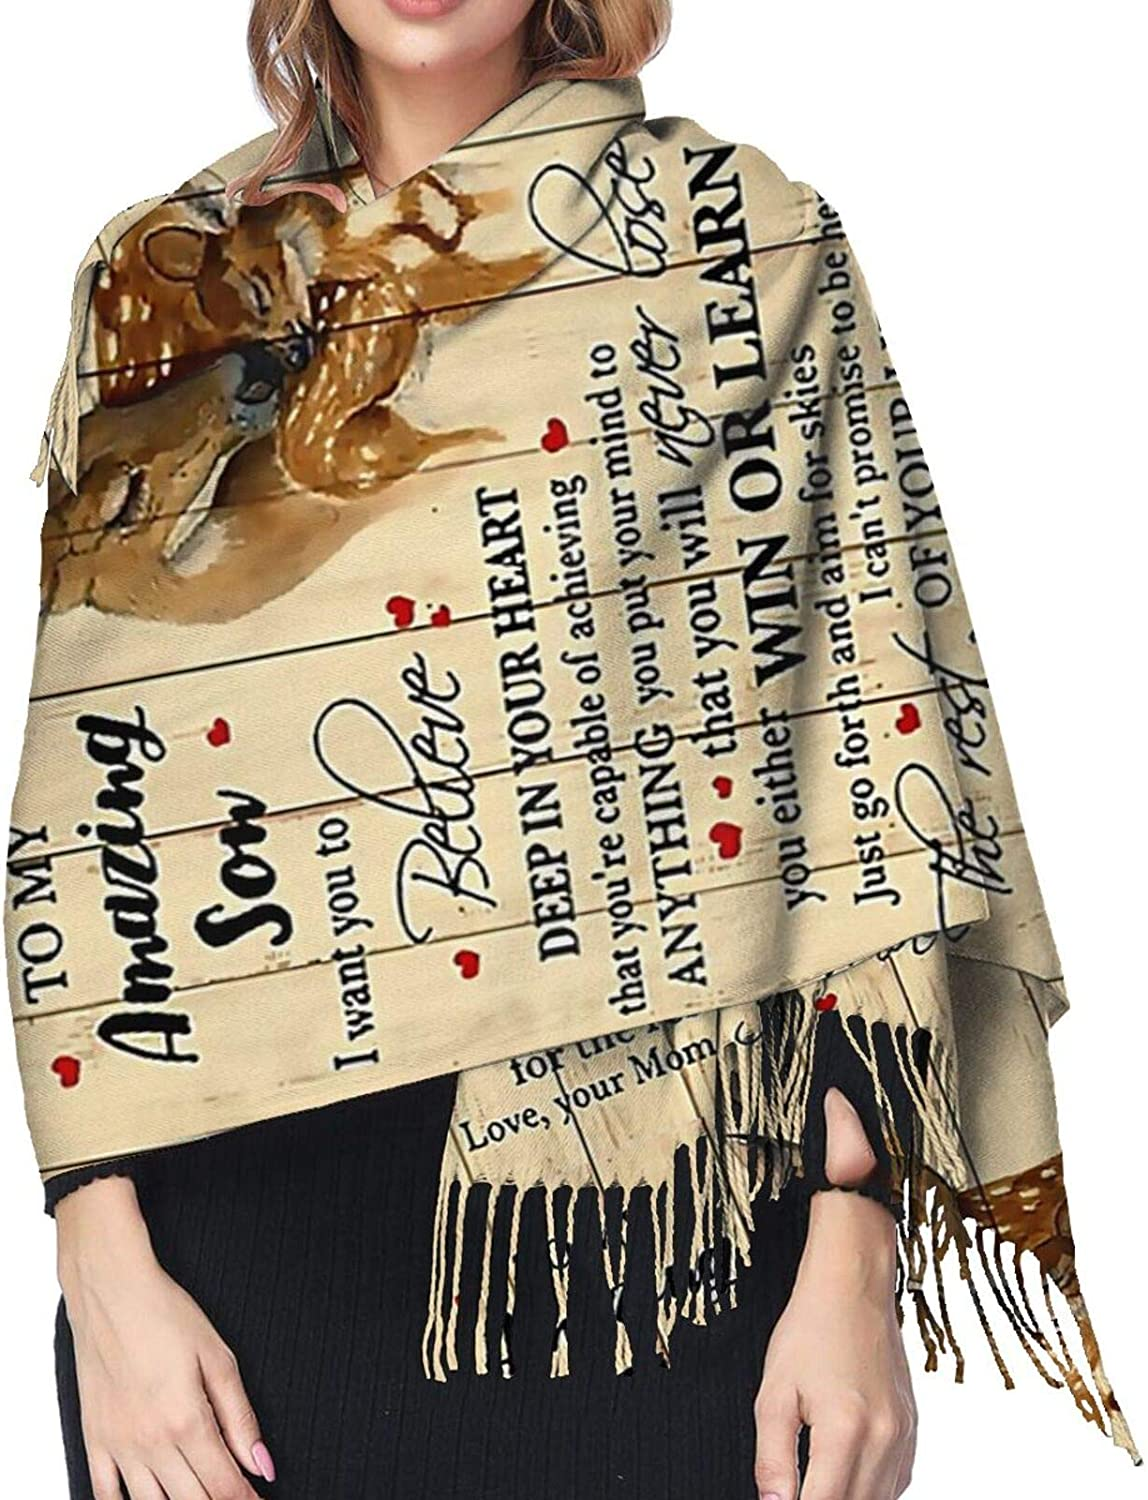 To My Amazing Son Deer Cashmere Feel Scarf Lightweight Soft Scarfs For Boys Girls Creative Warm Cold Weather Blanket Scarf